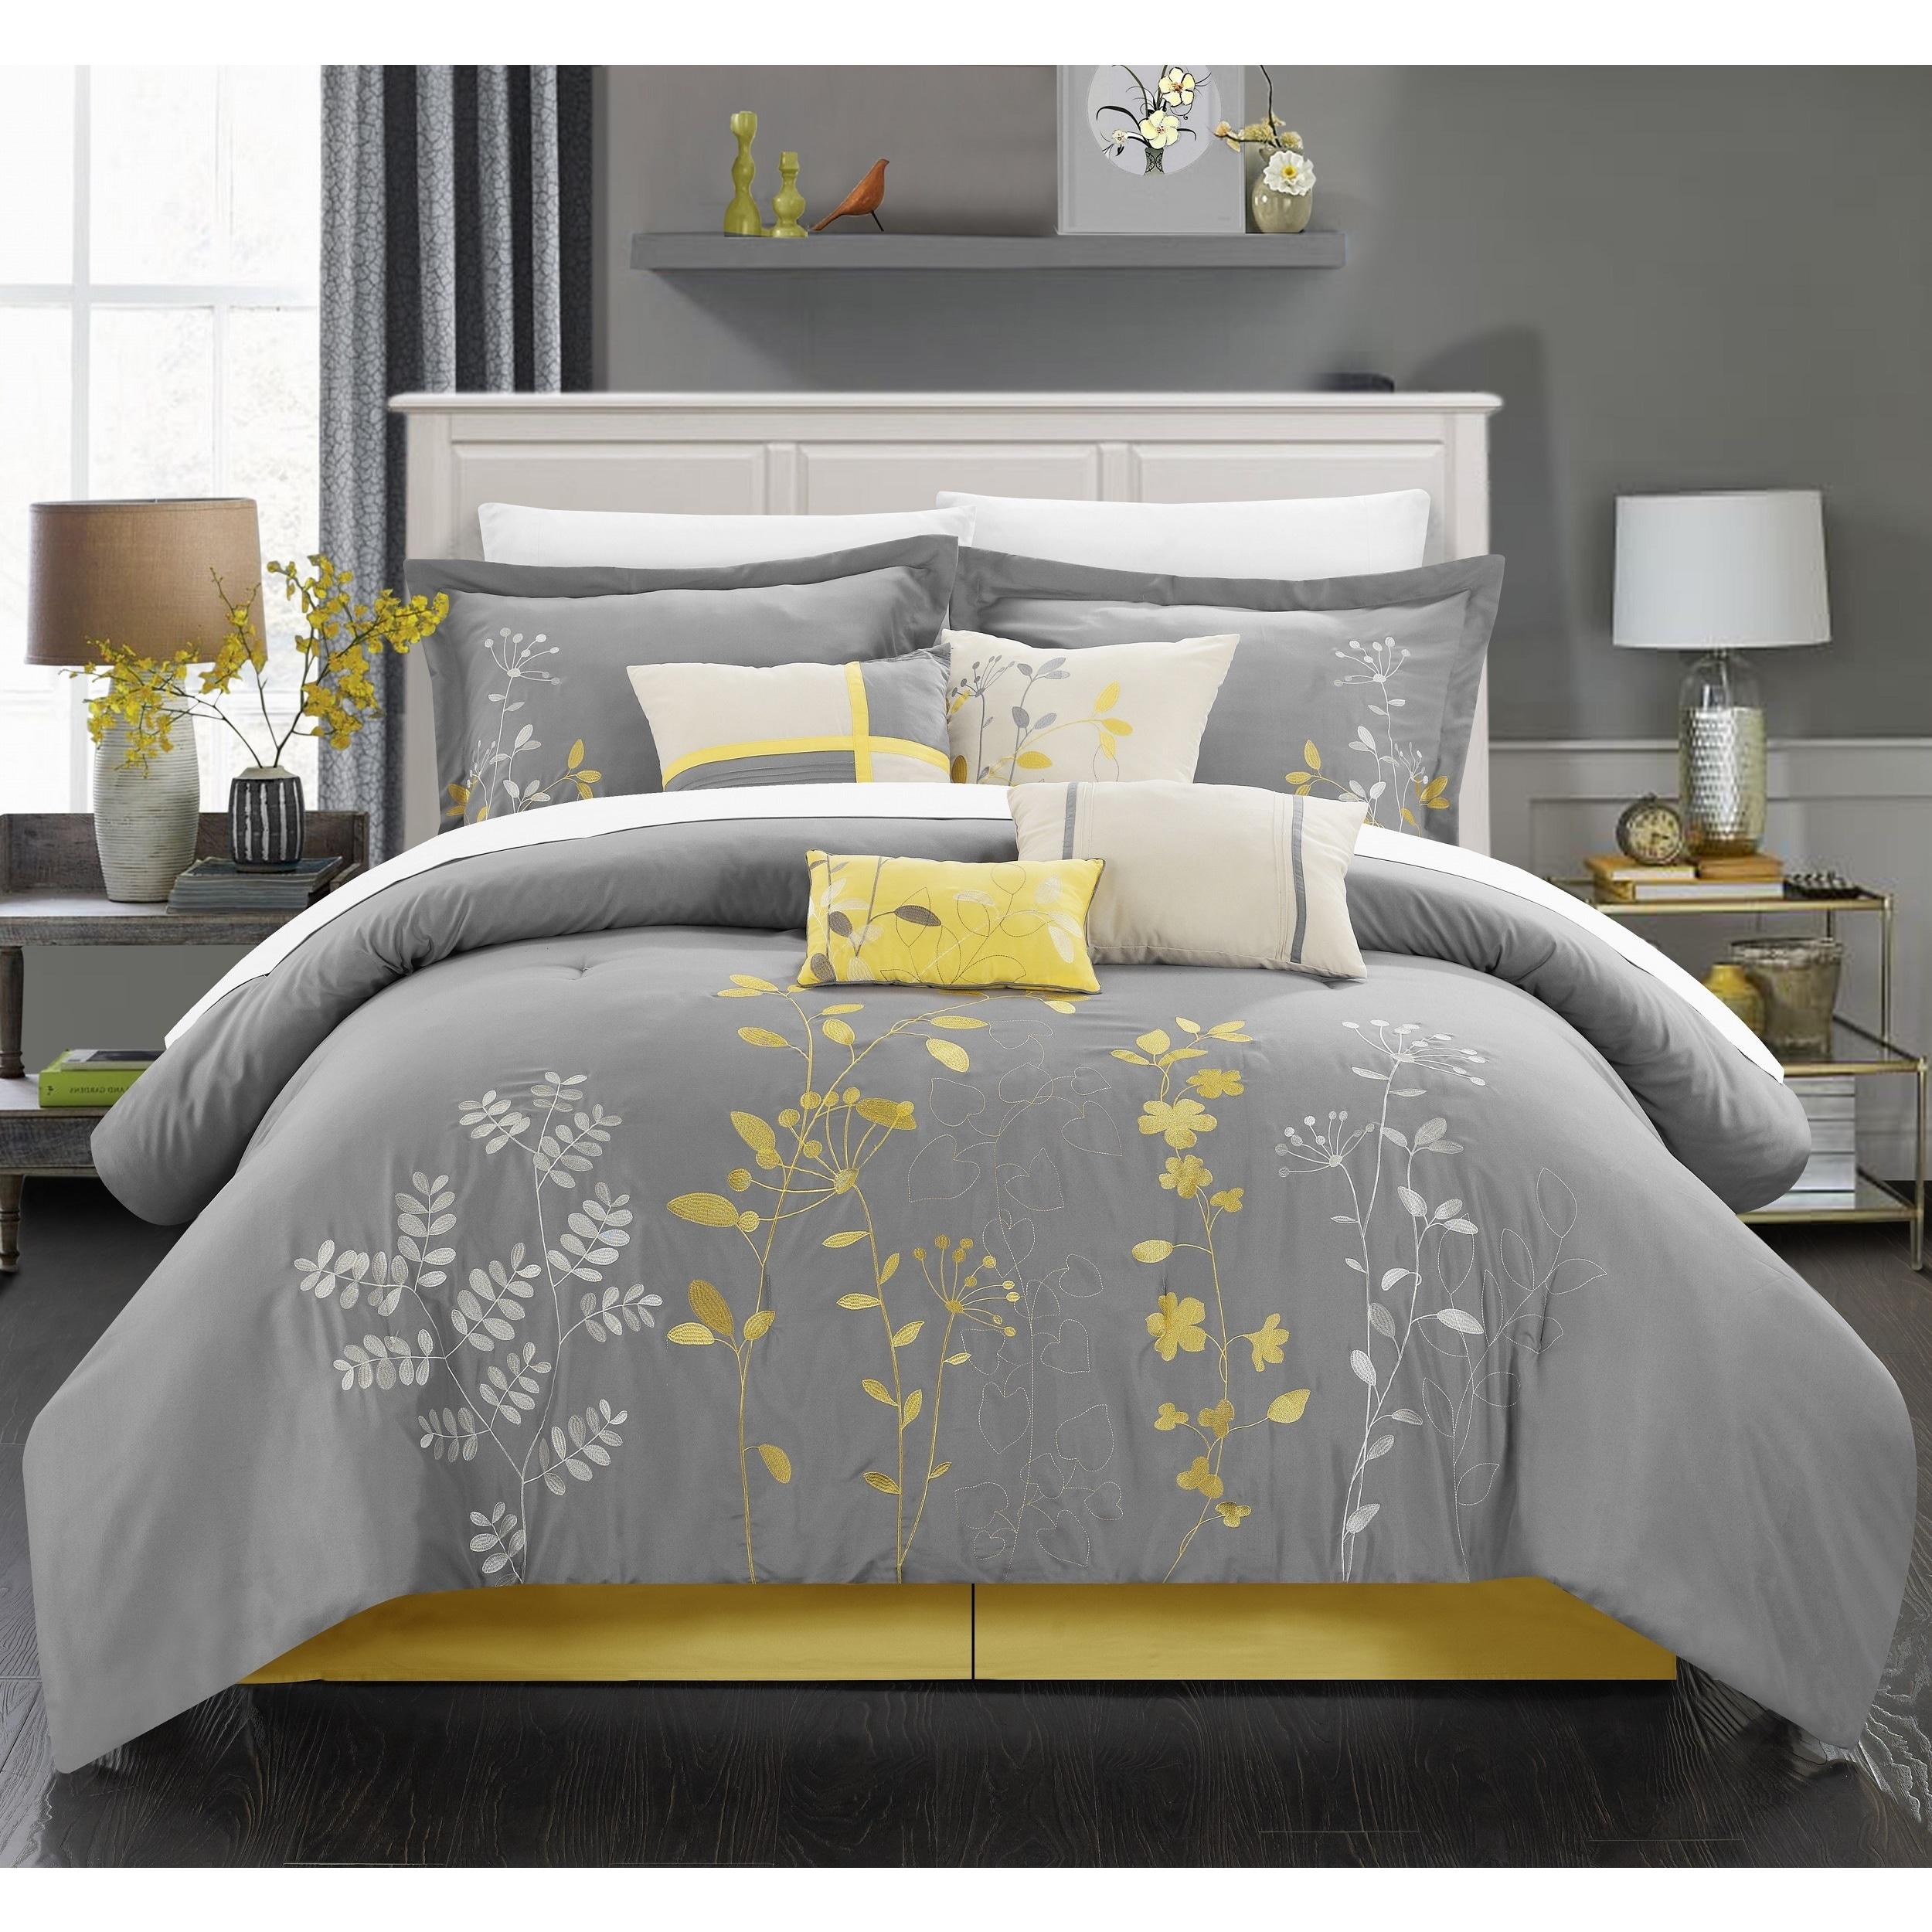 Black Grey Yellow Bedroom Bedroom Comforter Sets Bedroom Bed Head Ideas Bedroom Sets Light Wood: Shop Chic Home 8-piece Fortuno Embroidered Yellow